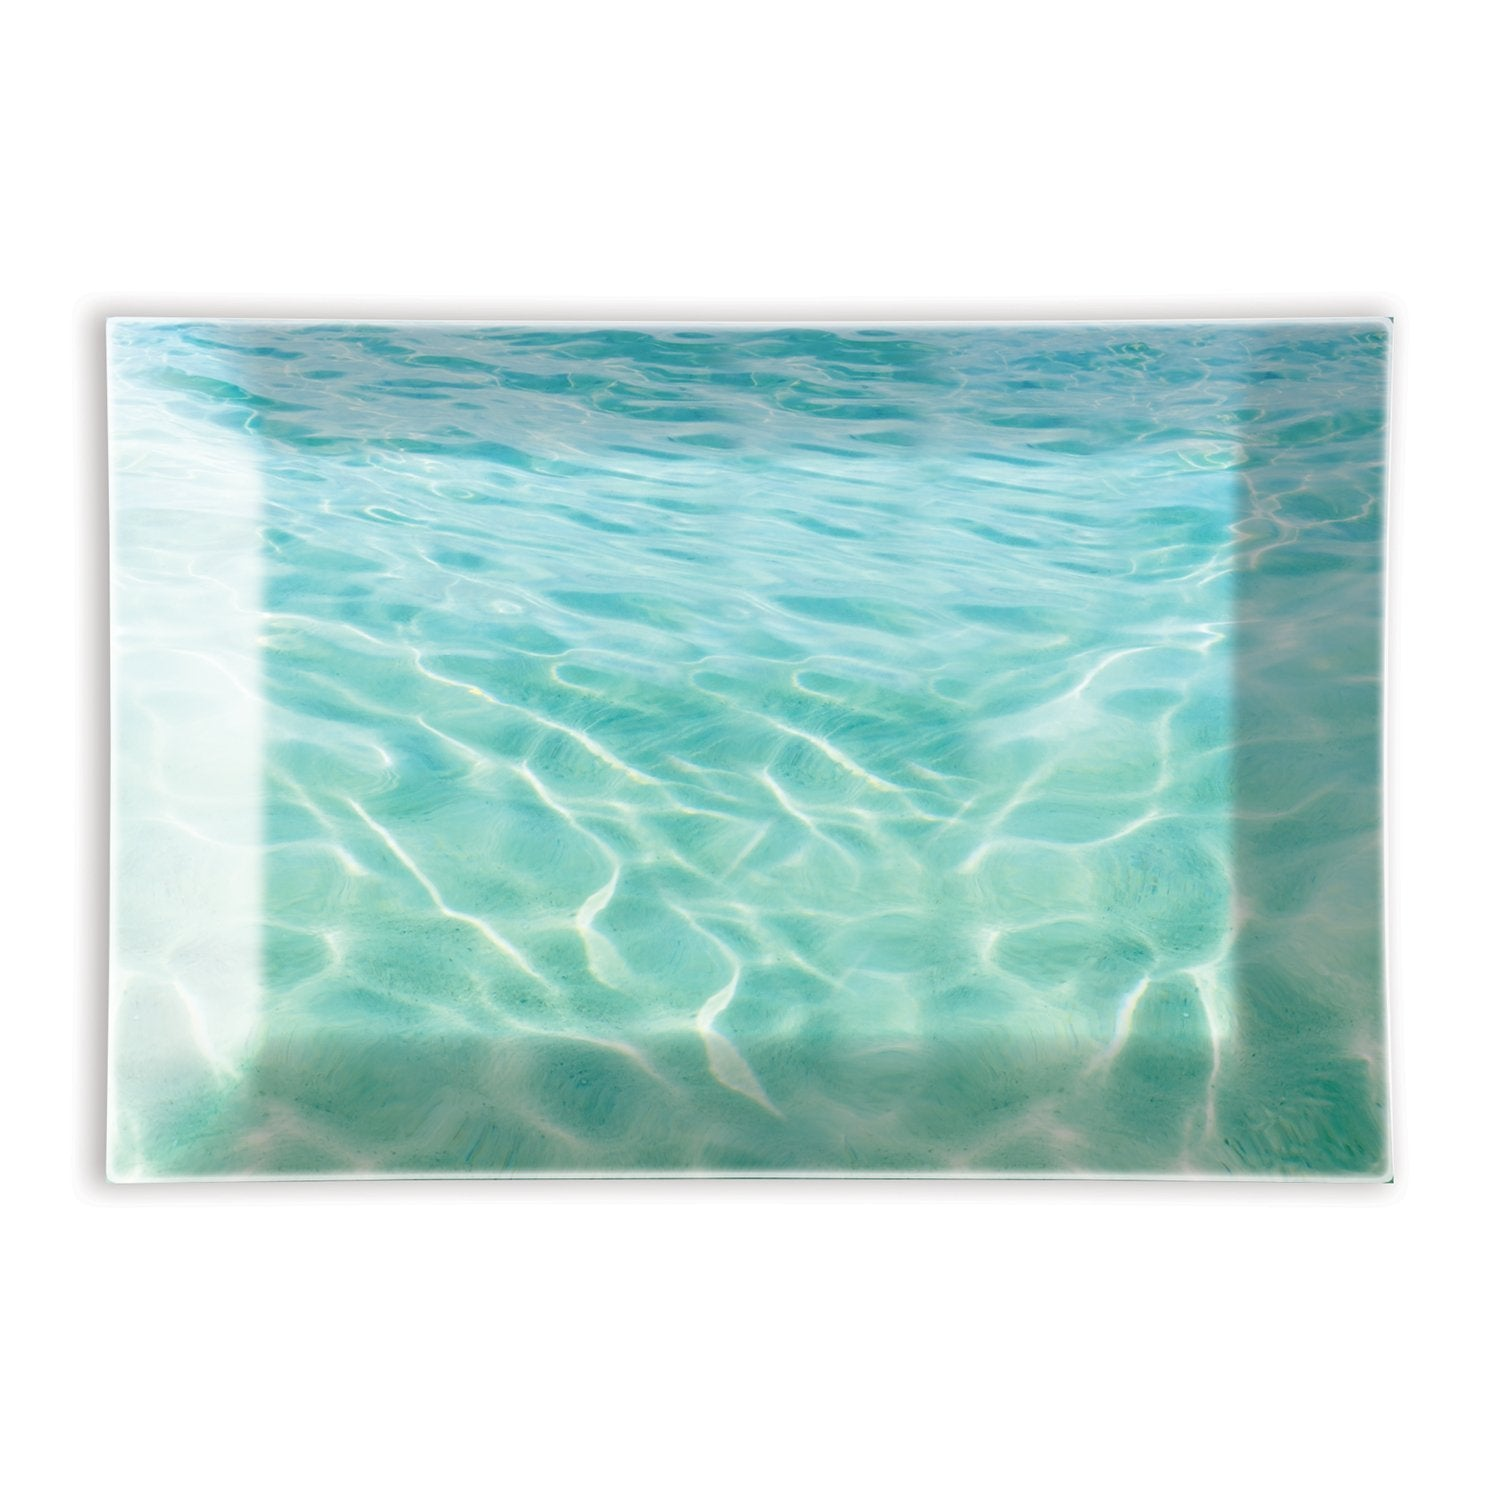 BEACH RECTANGULAR GLASS SOAP DISH GSDR189 - Molly's! A Chic and Unique Boutique